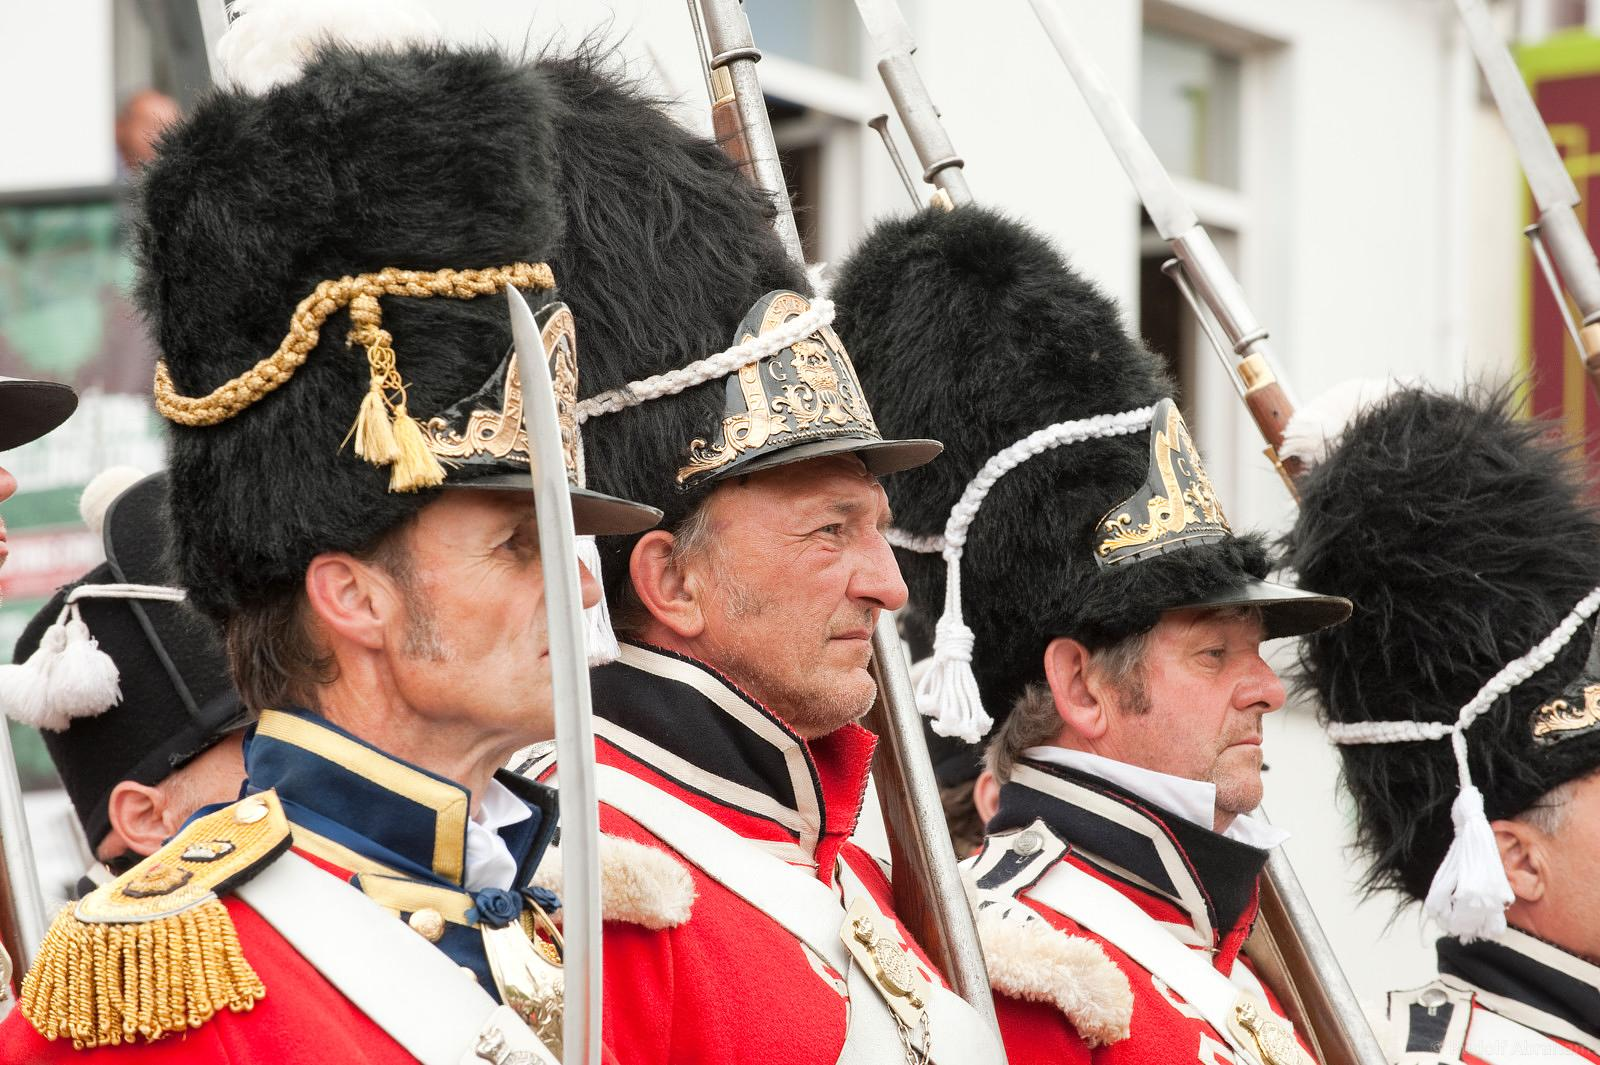 Waterloo 200th anniversary, Belgium